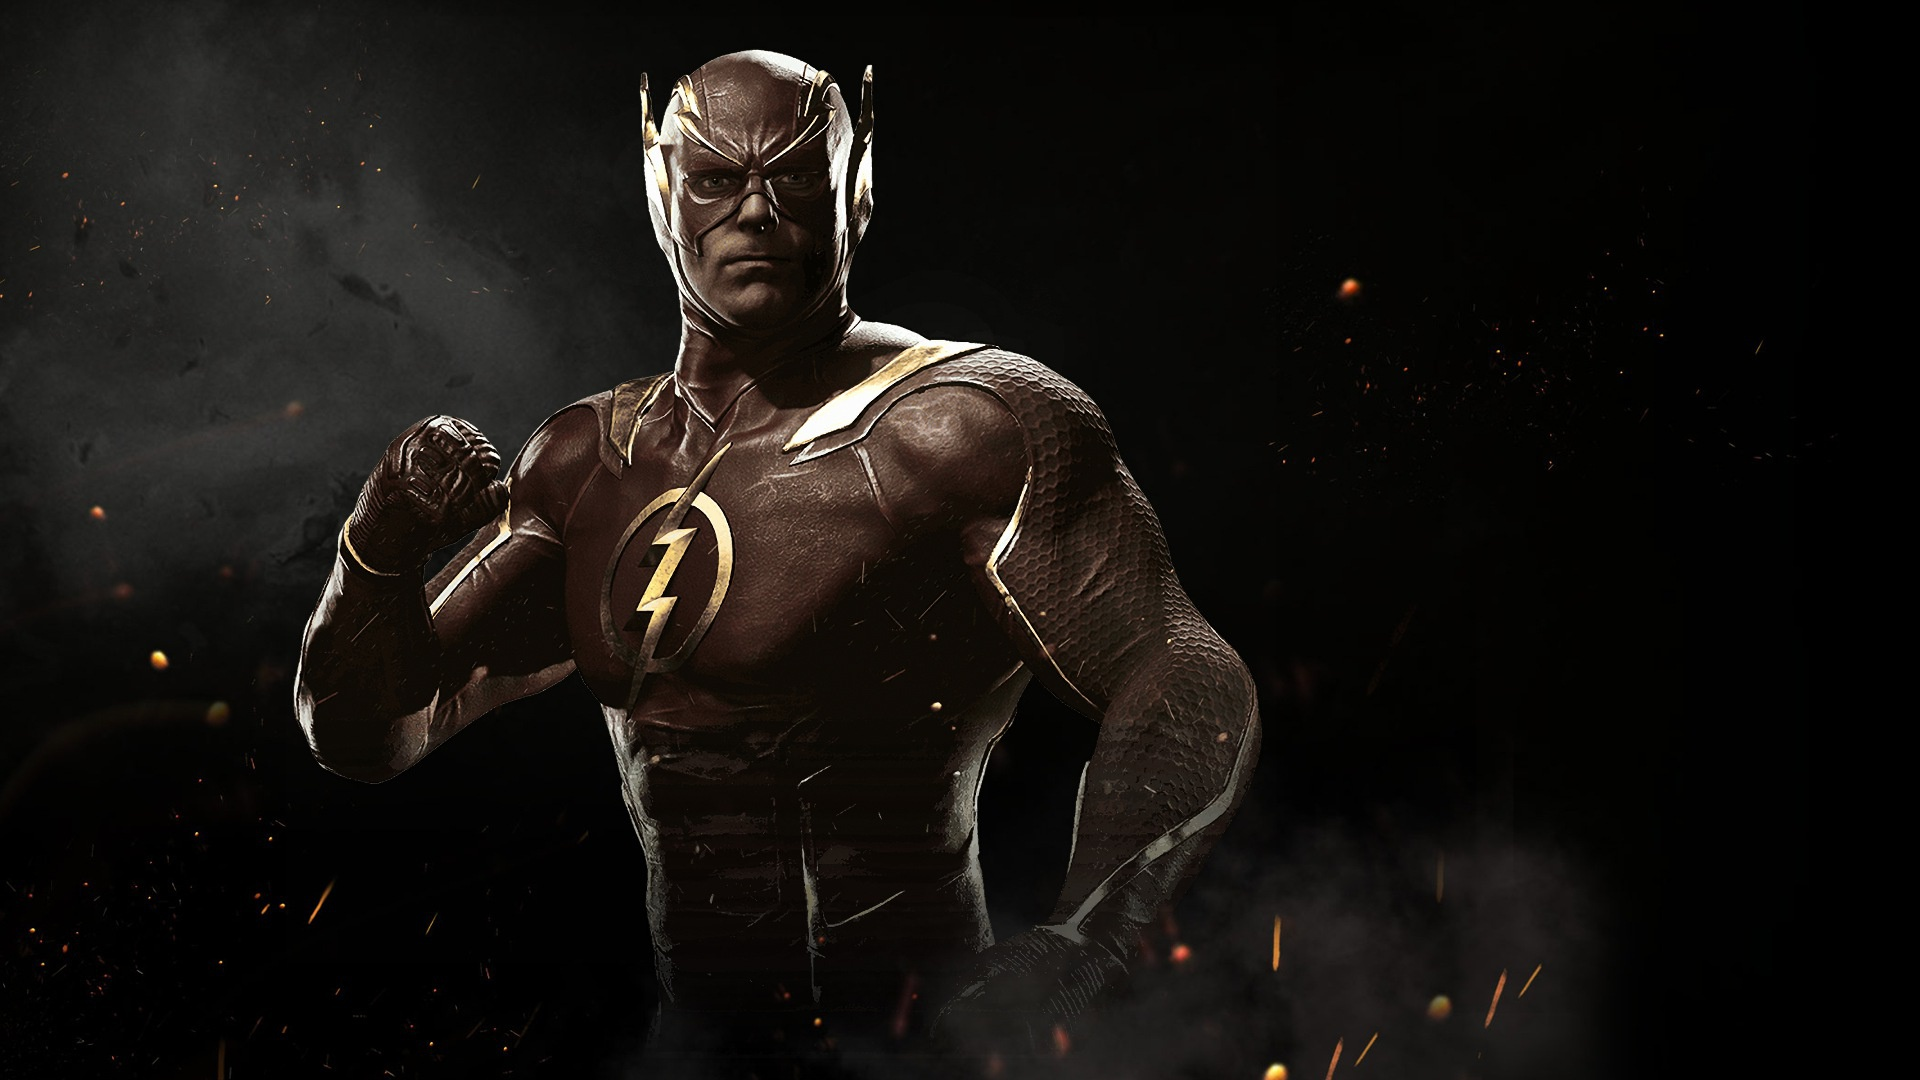 flash in injustice 2 hd games 4k wallpapers images backgrounds photos and pictures injustice 2 hd games 4k wallpapers